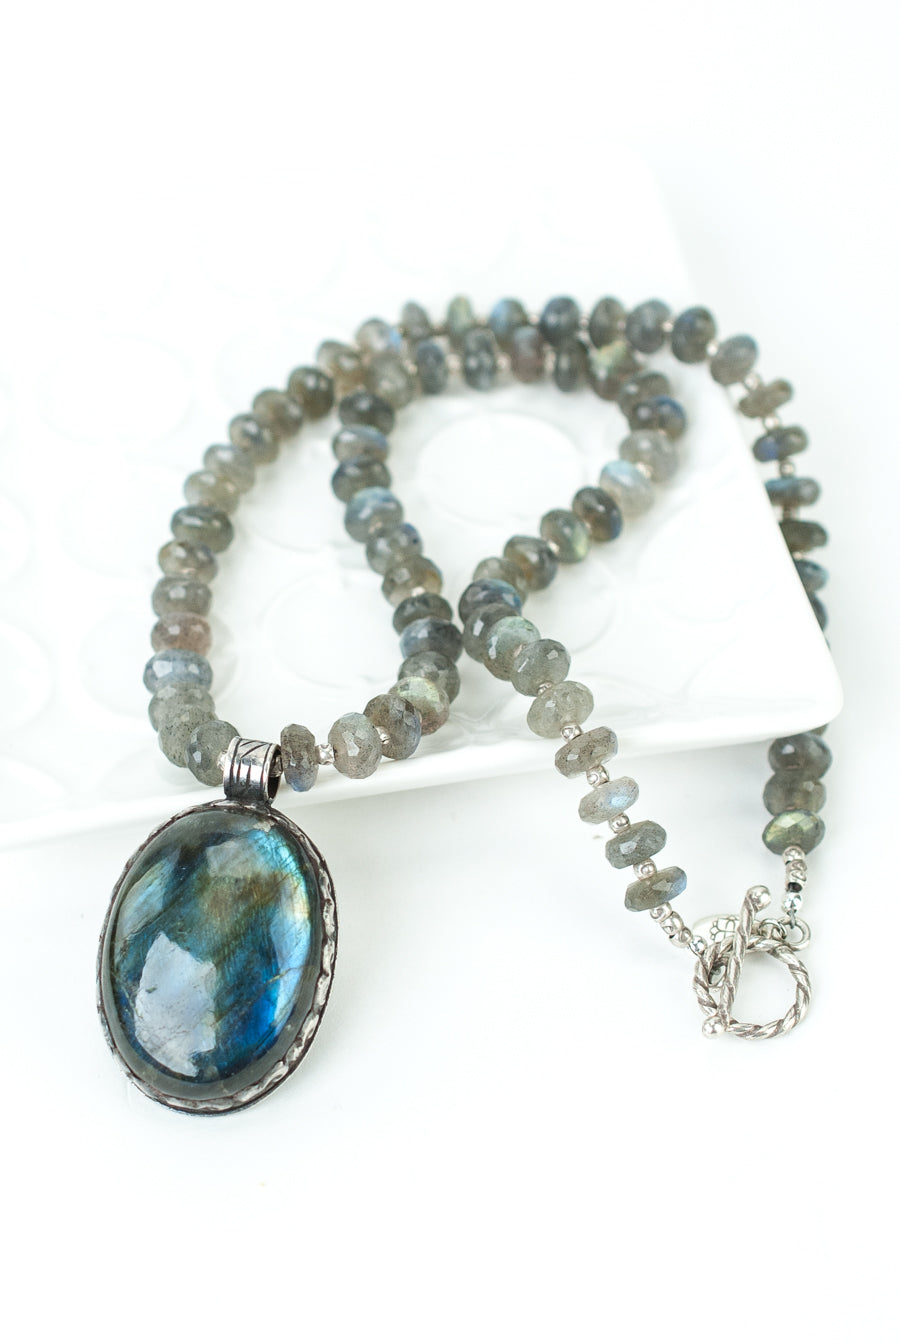 "One of a Kind 20"" Labradorite and Fine Silver Focal Necklace"